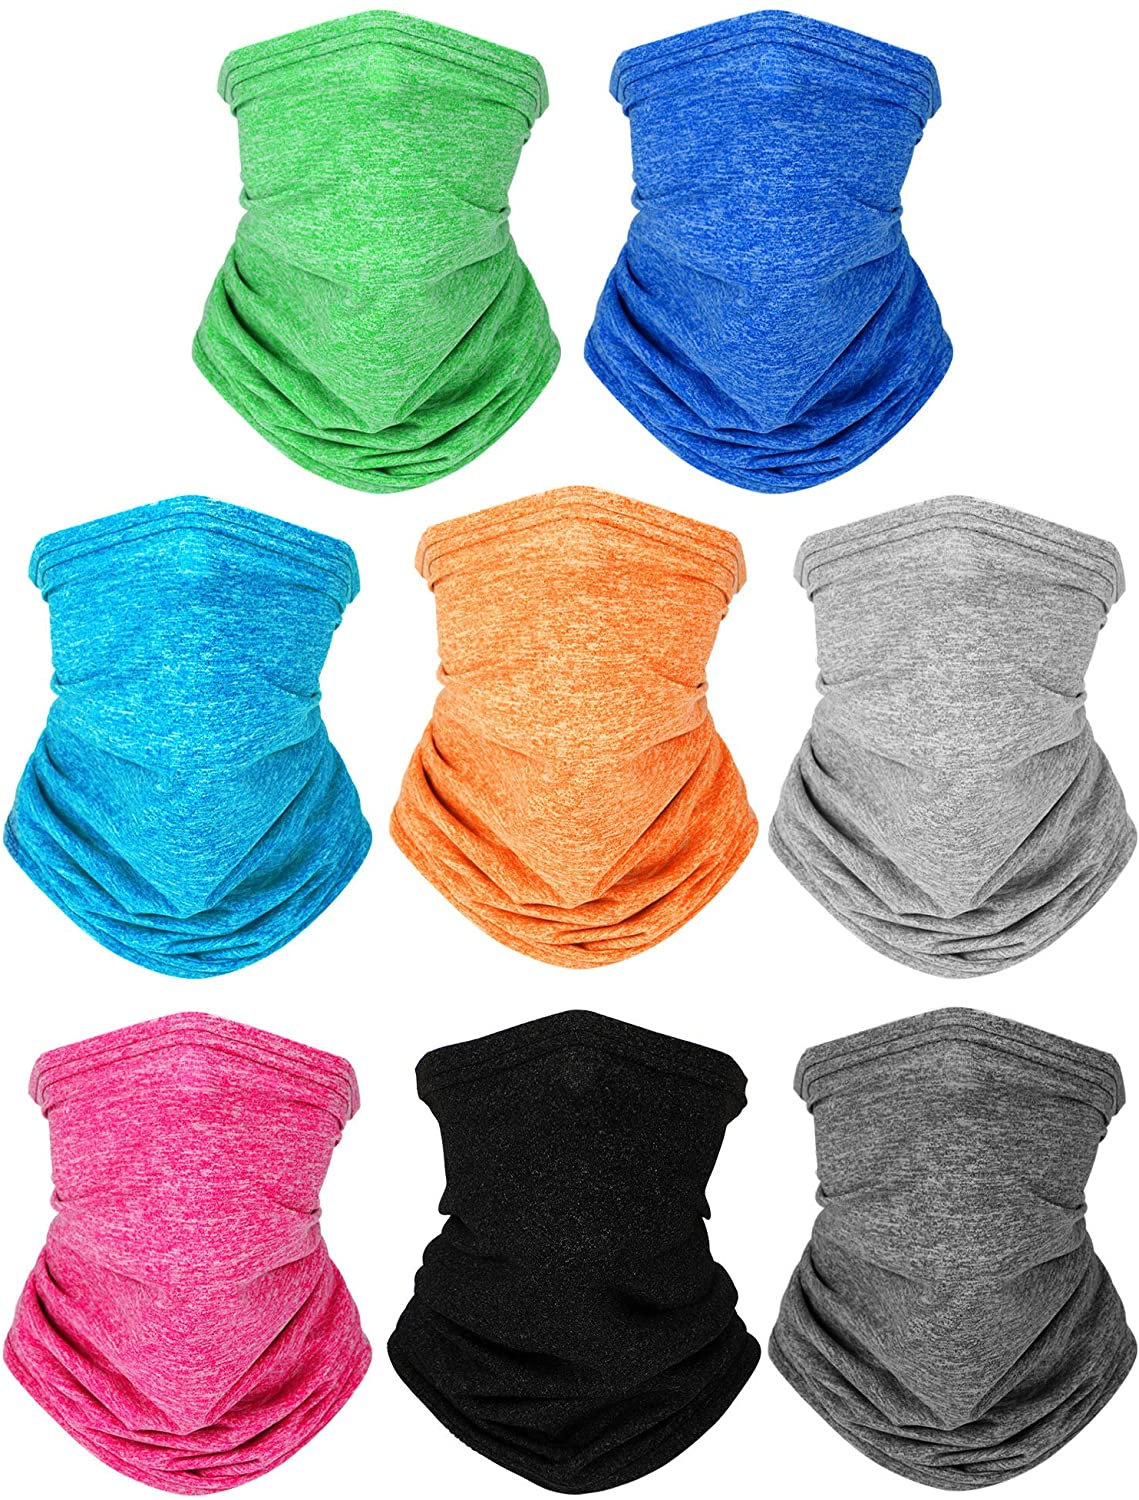 Kids Neck Gaiters UV Protection Bandana Balaclavas Face Cover Scarf for Outdoors Sports Favors